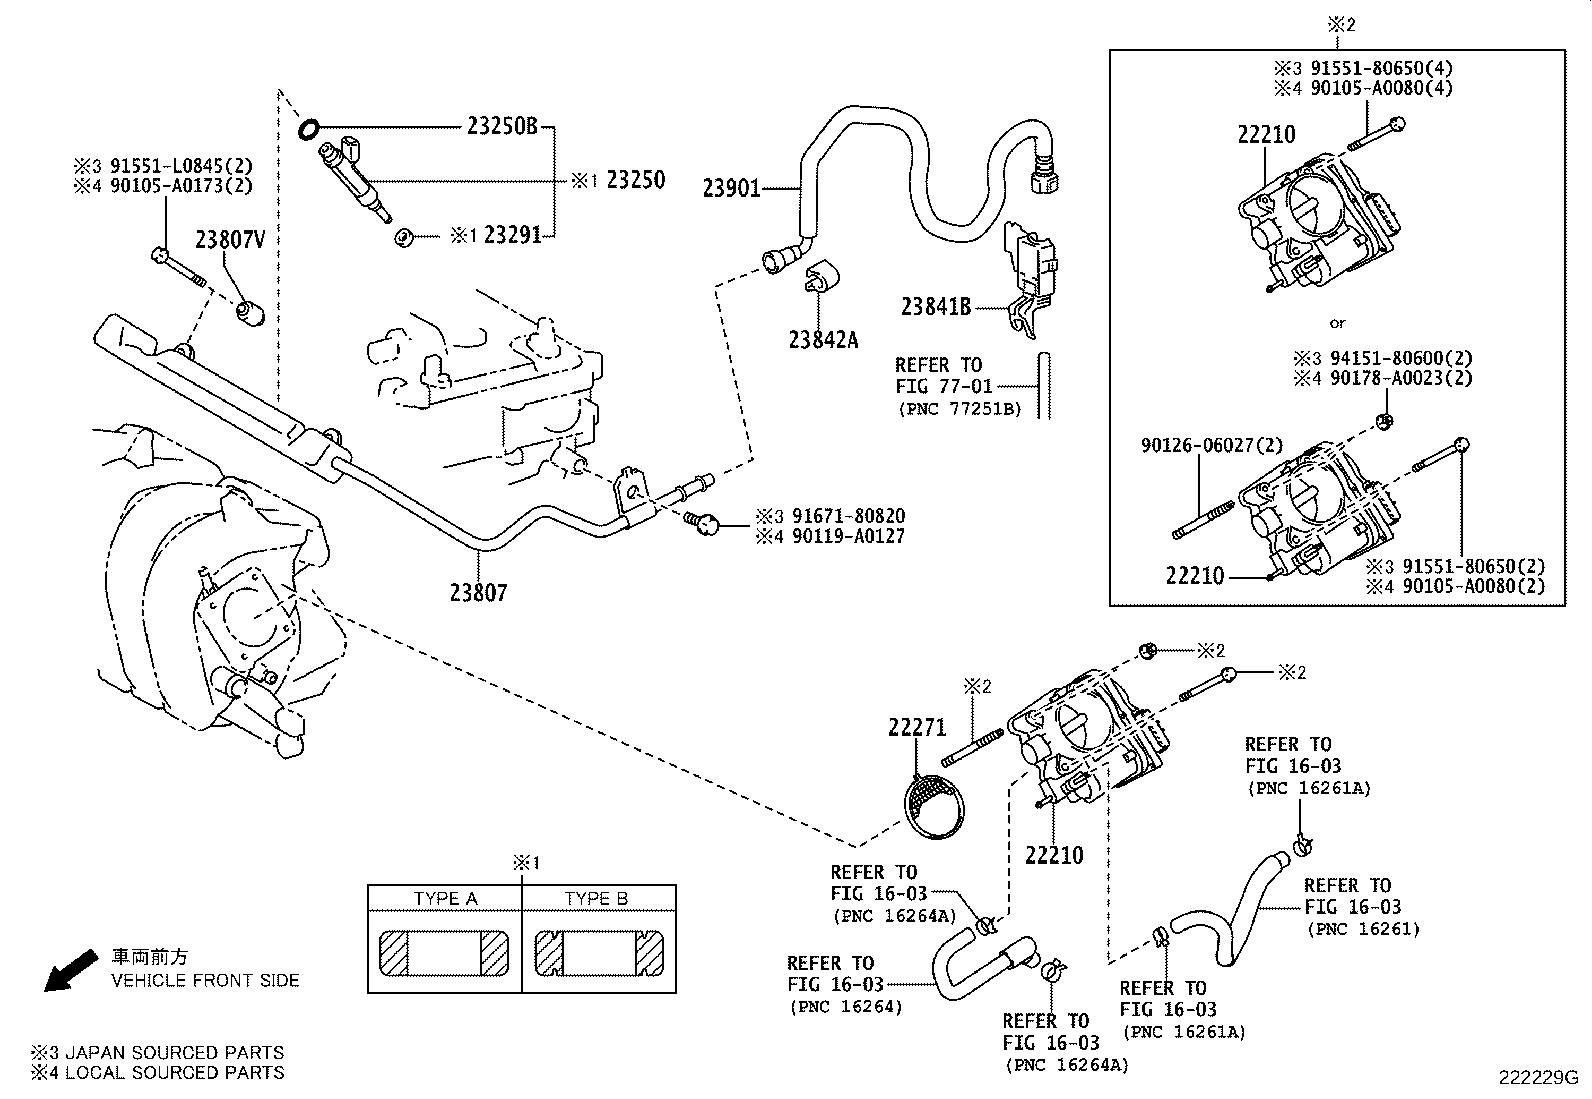 Toyota Corolla Fuel Injection Throttle Body